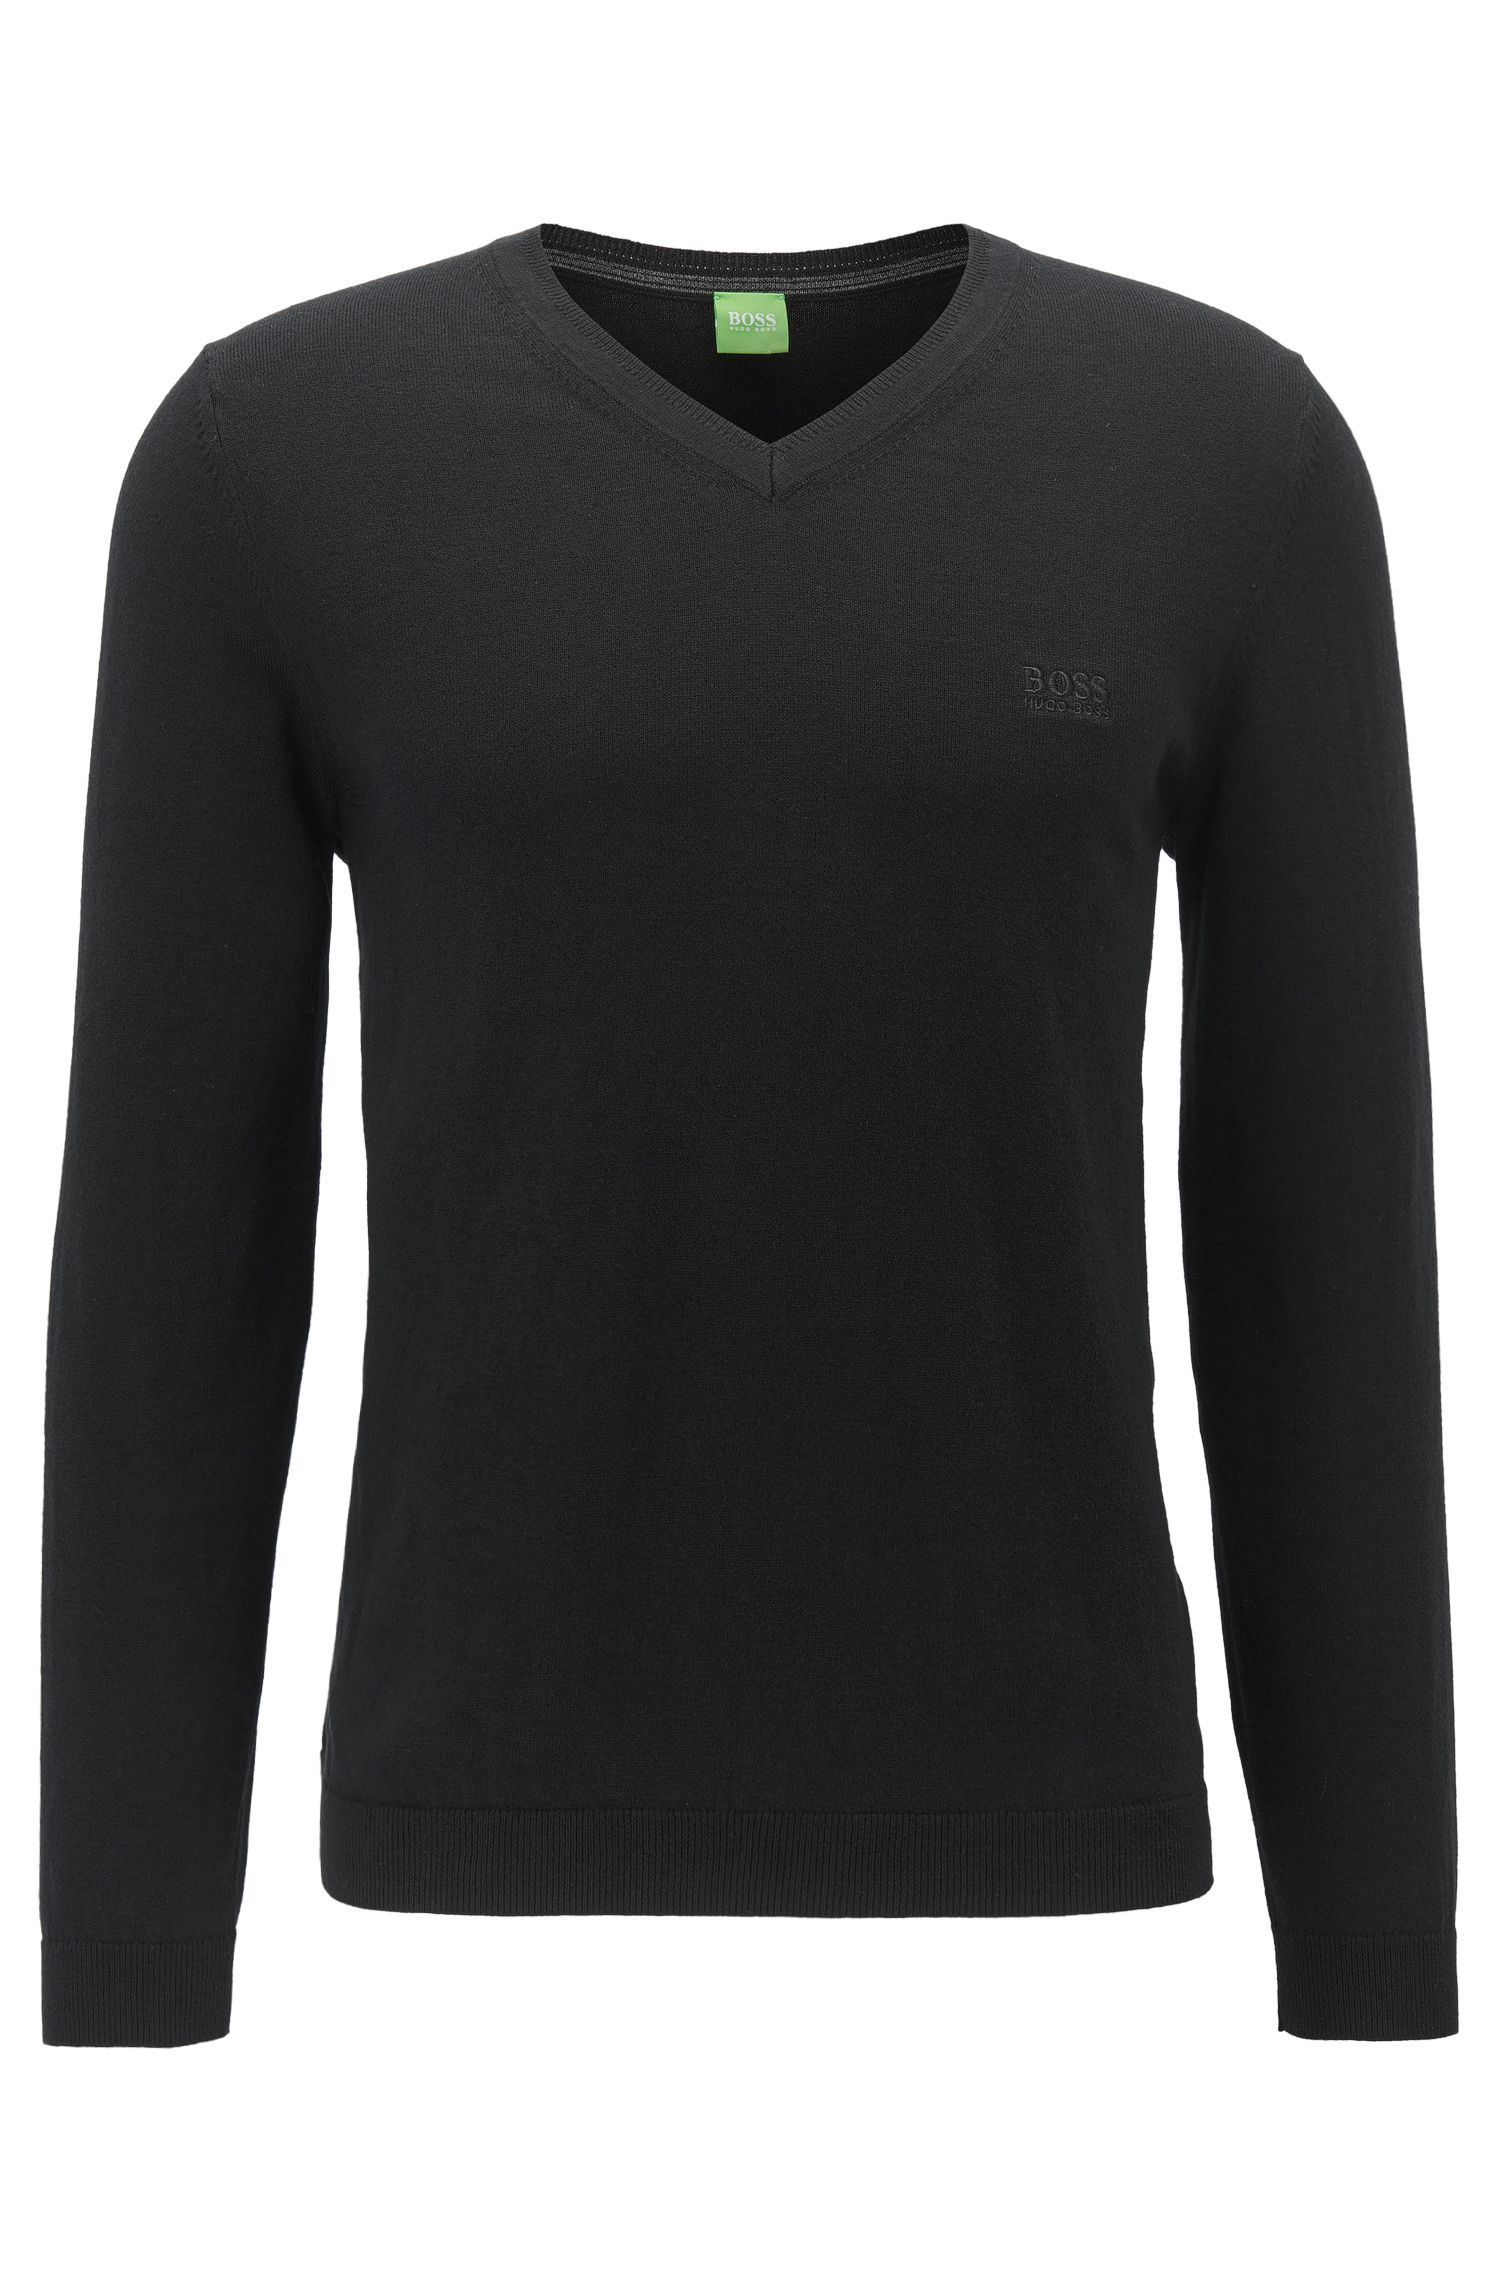 V-neck sweater in super-soft cotton blended with cashmere